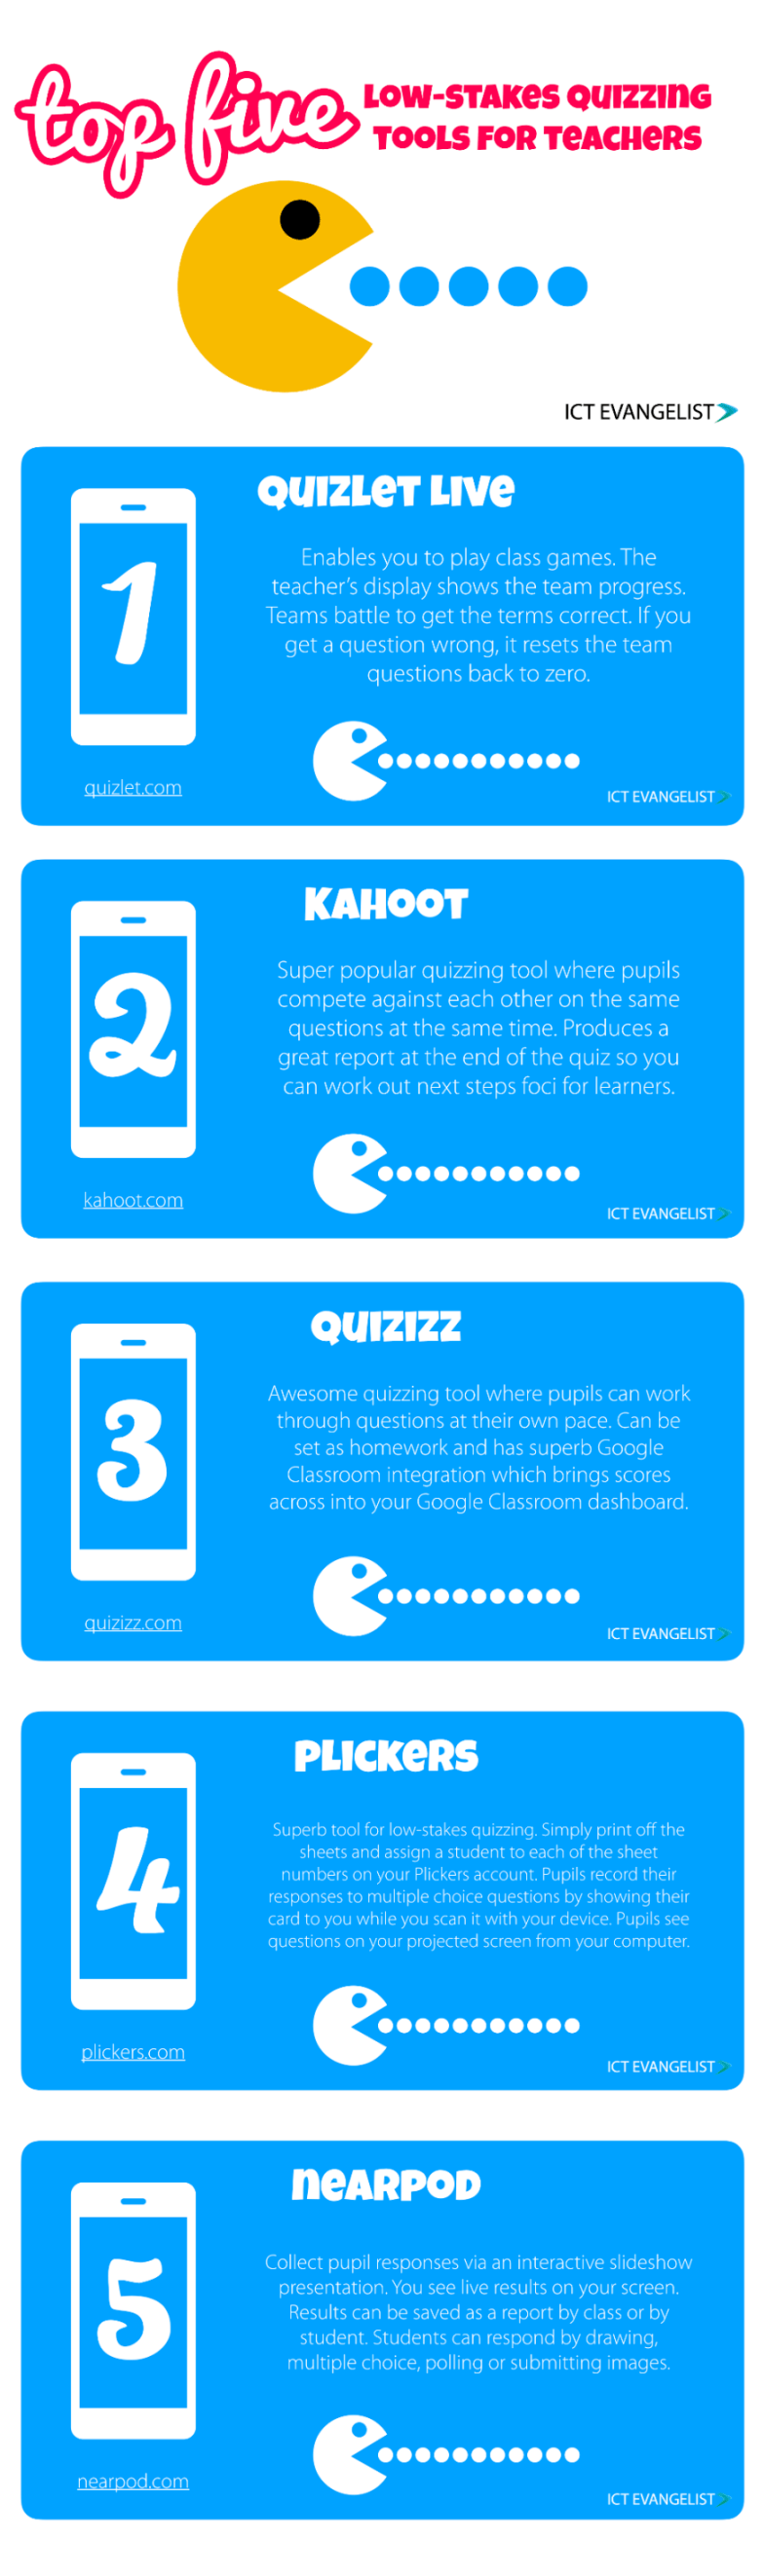 Top 5 Low-Stakes Quizzing Tools For Teachers Infographic